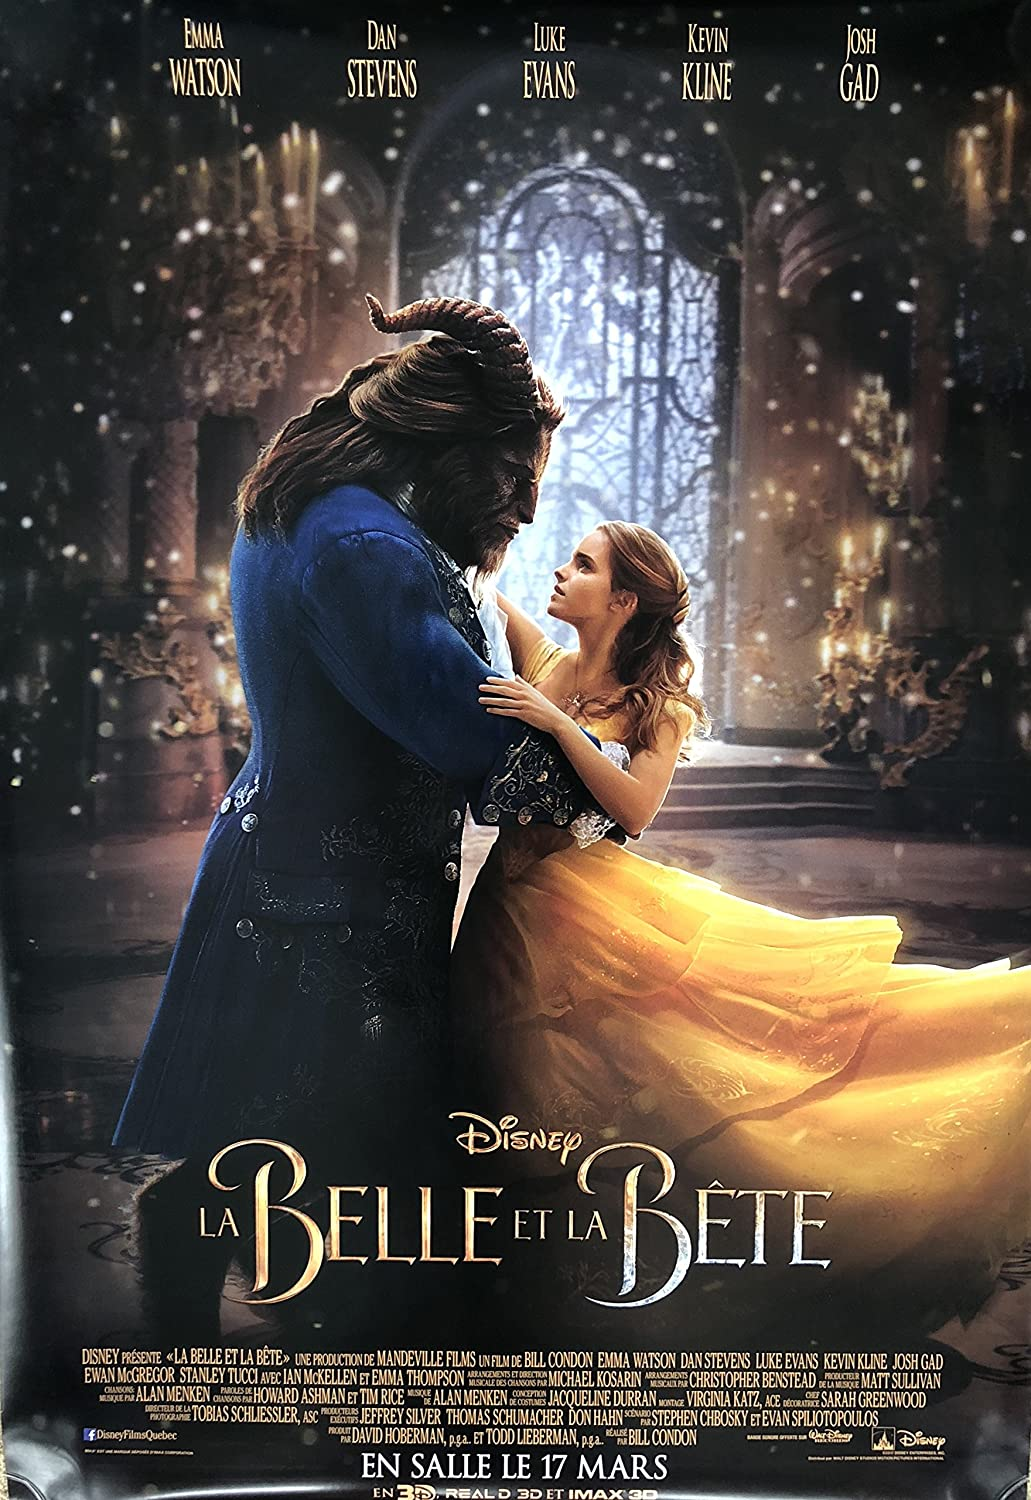 Amazon Com Beauty And The Beast 2017 Original Authentic Movie Poster 27x40 Dbl Sided French Version Set Of 2 Emma Watson Dan Stevens Luke Evans Kevin Kline Everything Else